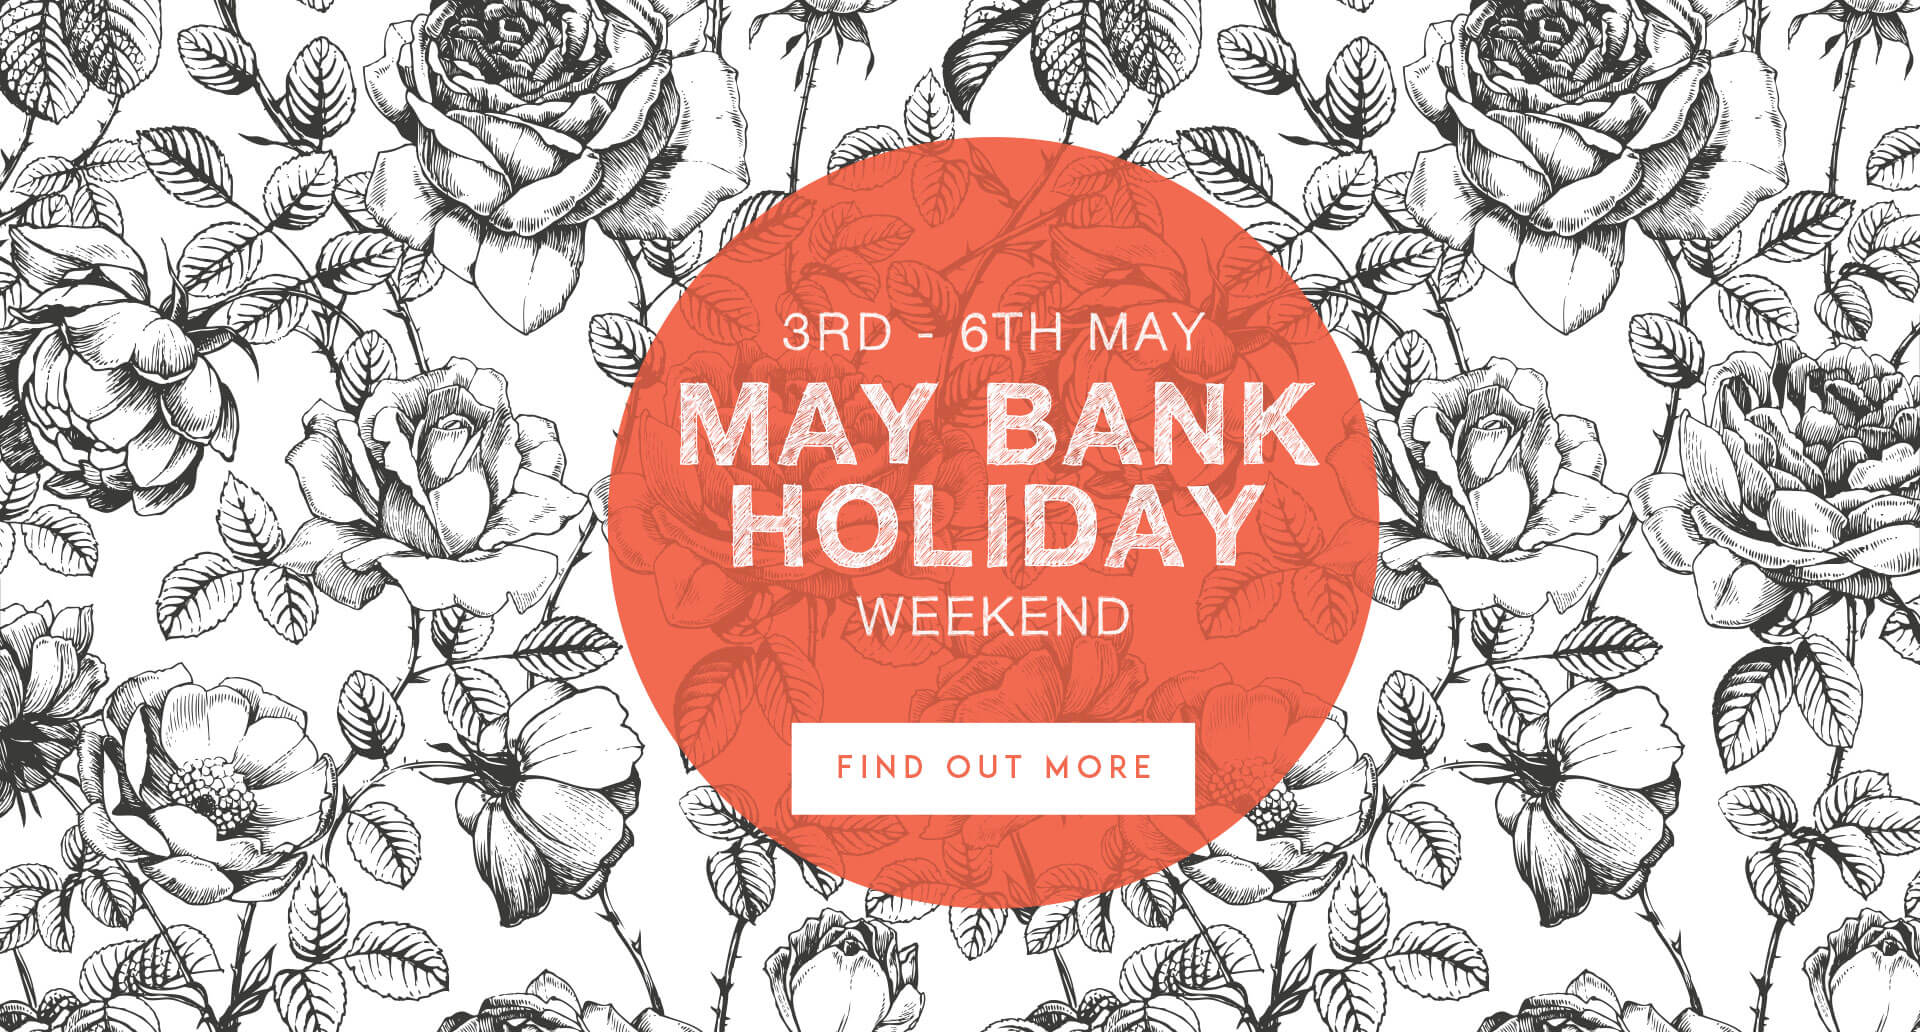 May Bank Holiday at The Island Queen